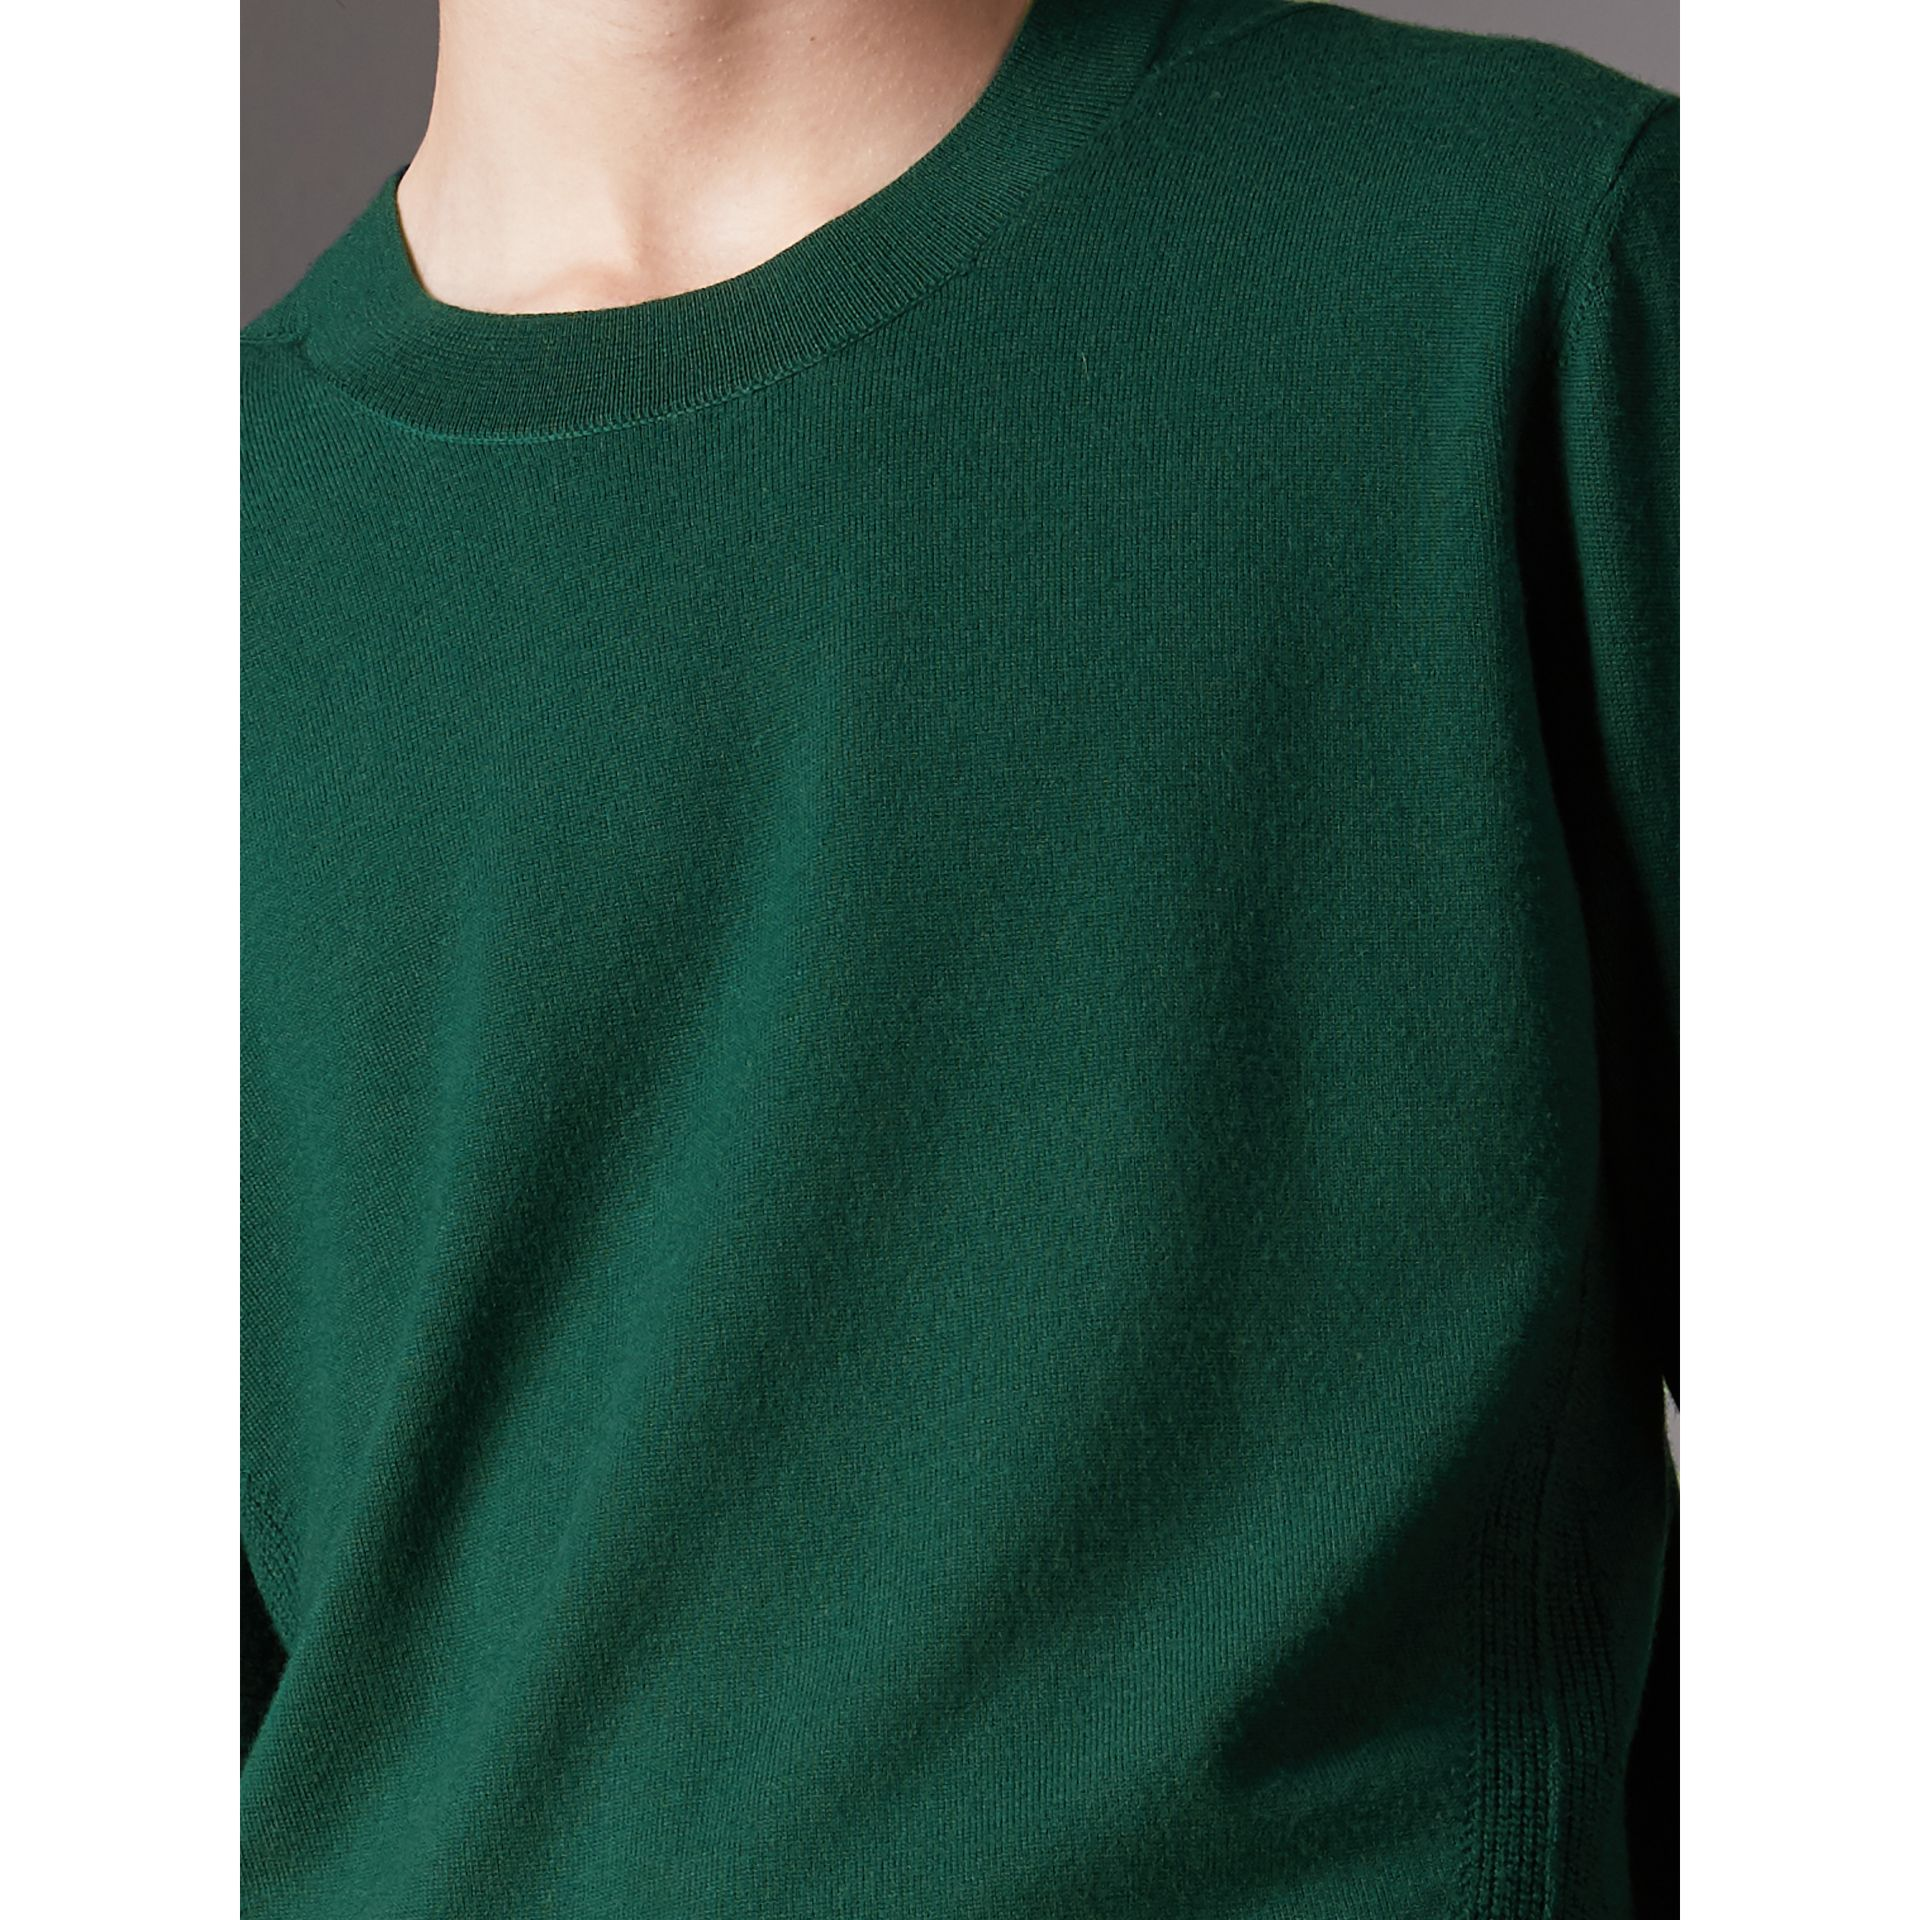 Check Detail Merino Wool Sweater in Dark Teal - Men | Burberry United States - gallery image 1